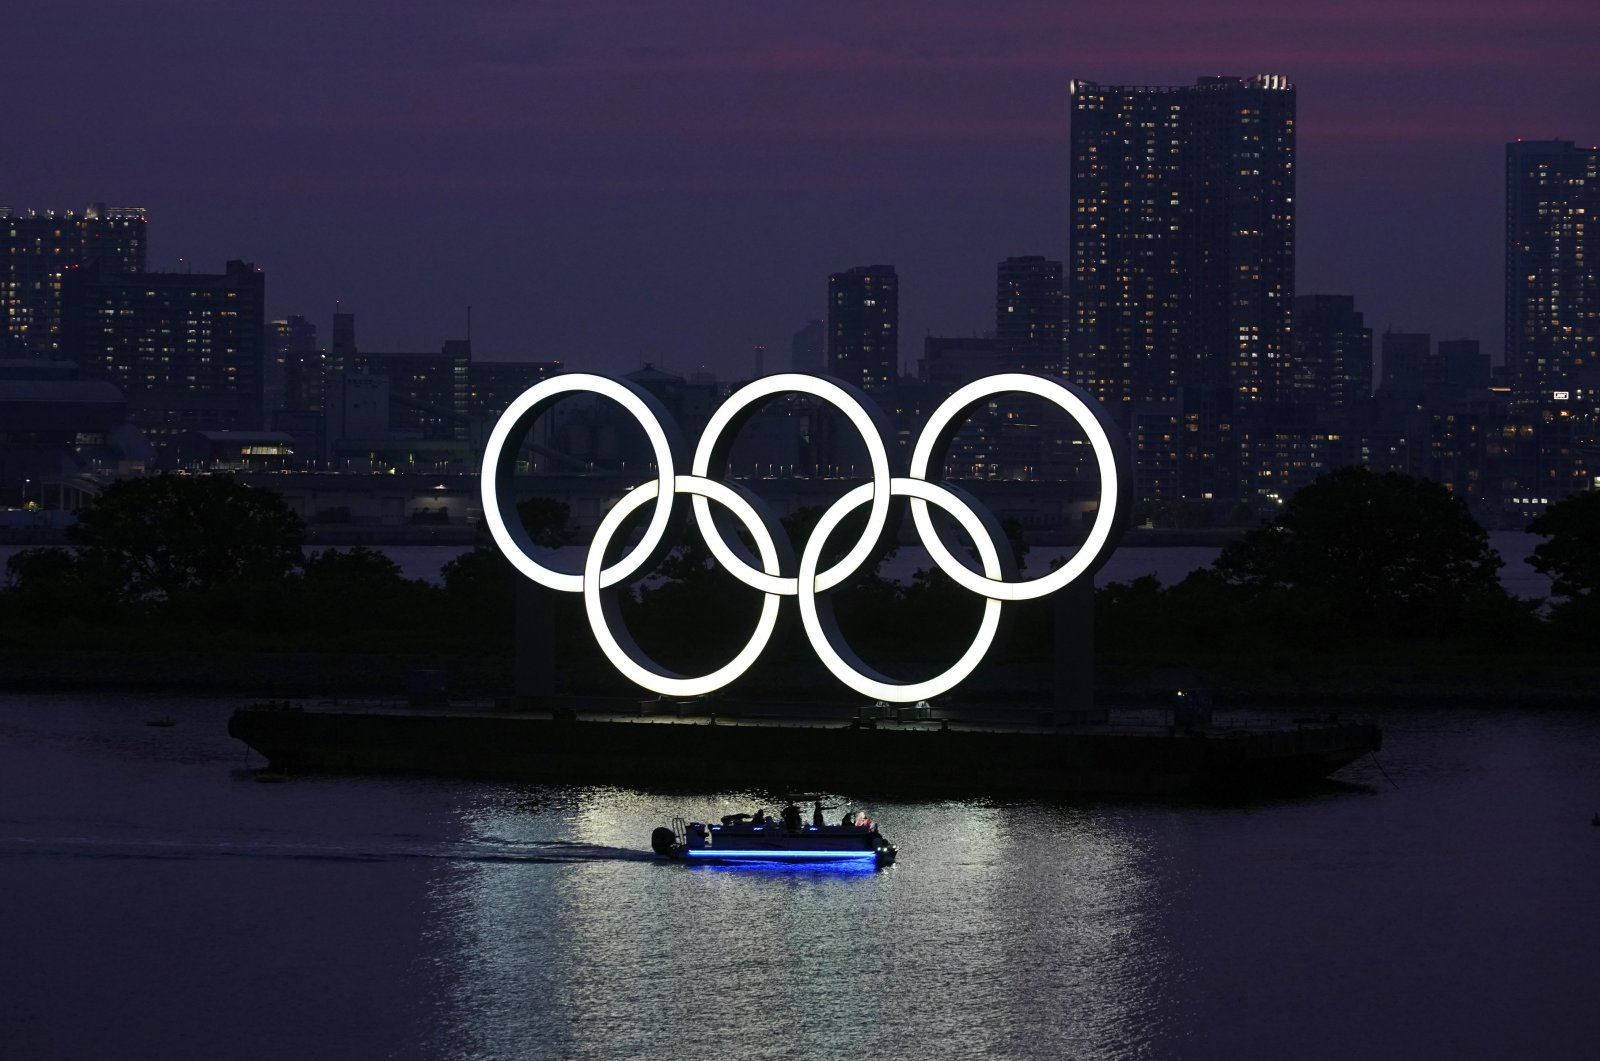 The Olympic rings float in the water at sunset in the Odaiba section in Tokyo, Japan, June 3, 2020. (AP Photo)